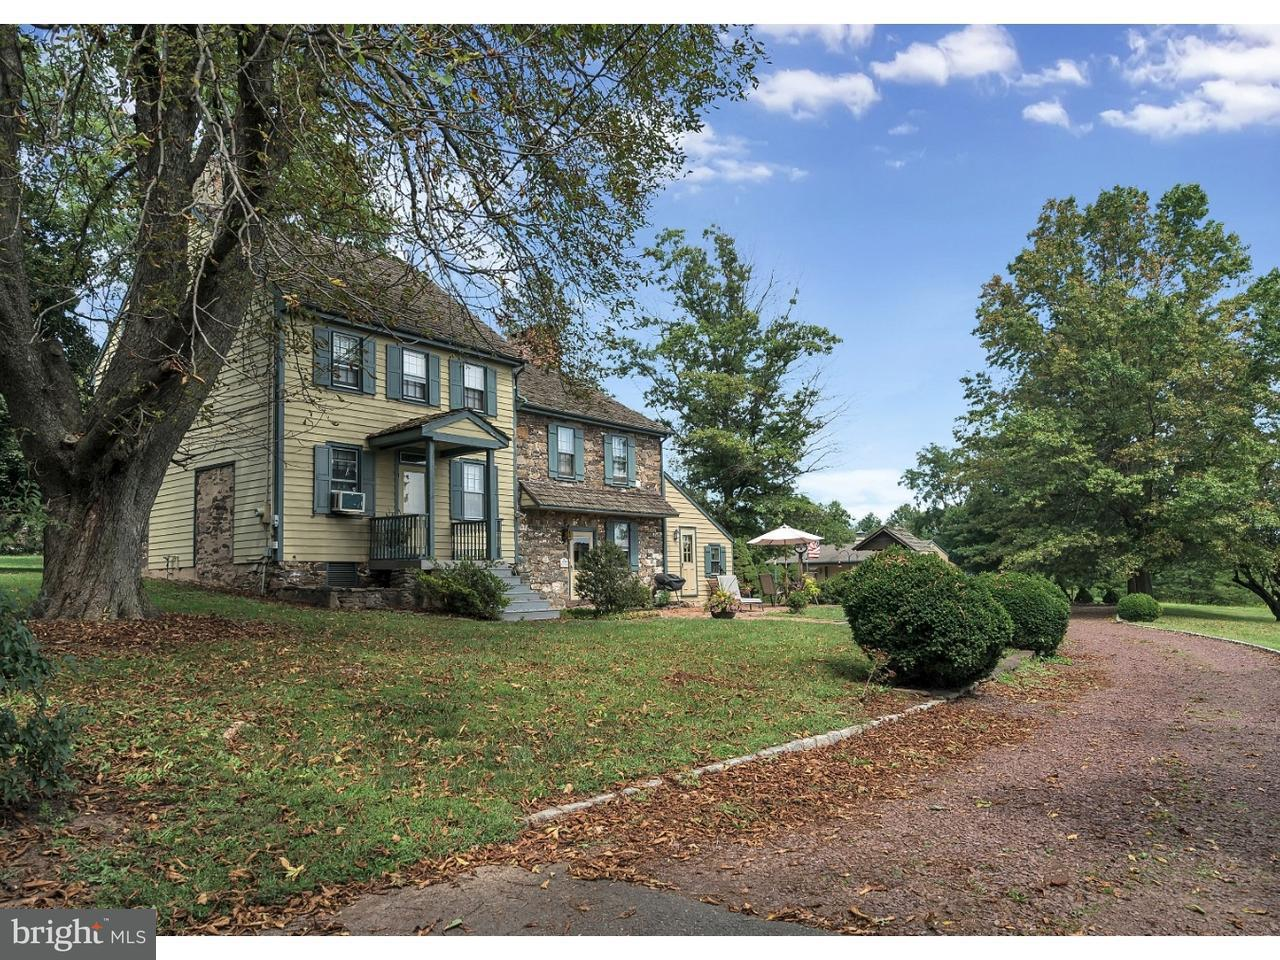 Single Family Home for Sale at 1258 BEAR TAVERN Road Hopewell, New Jersey 08560 United StatesMunicipality: Hopewell Township